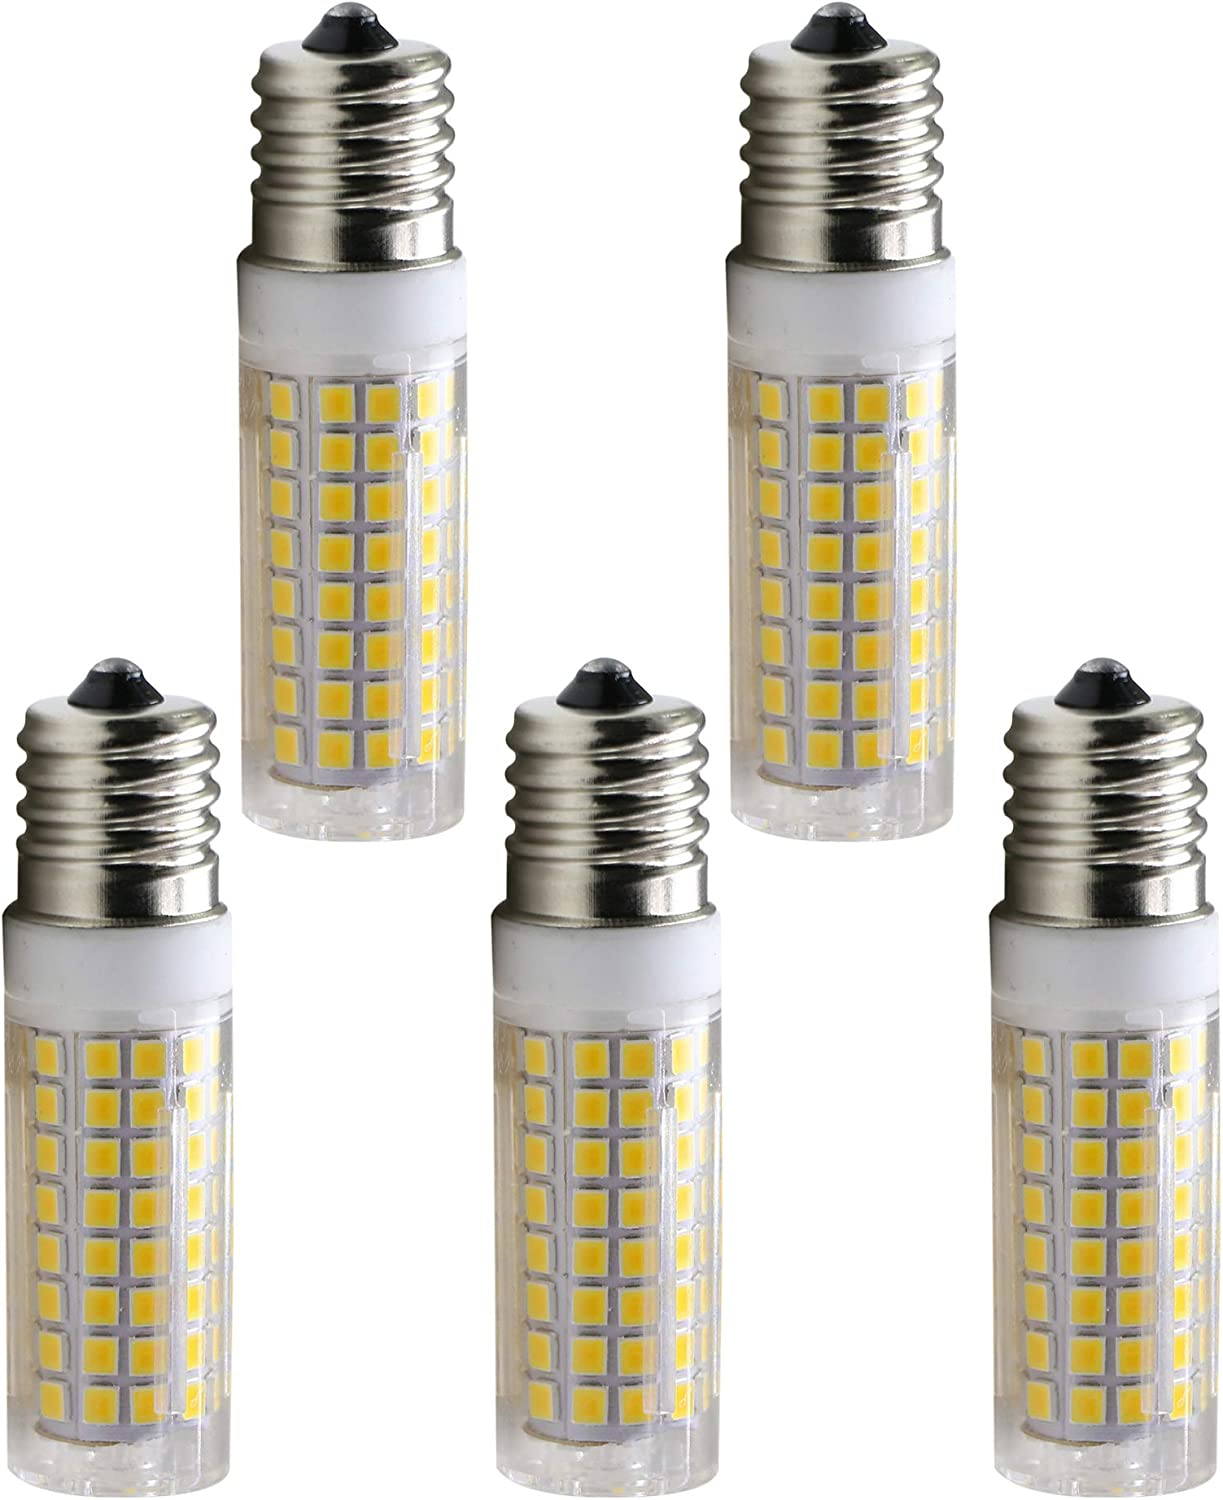 E17 LED Bulb 8 Watt Appliance Bulb Microwave Oven Light 3000K Warm White, 850lm, 75W Halogen Equivalent dimmable (5-Pack)